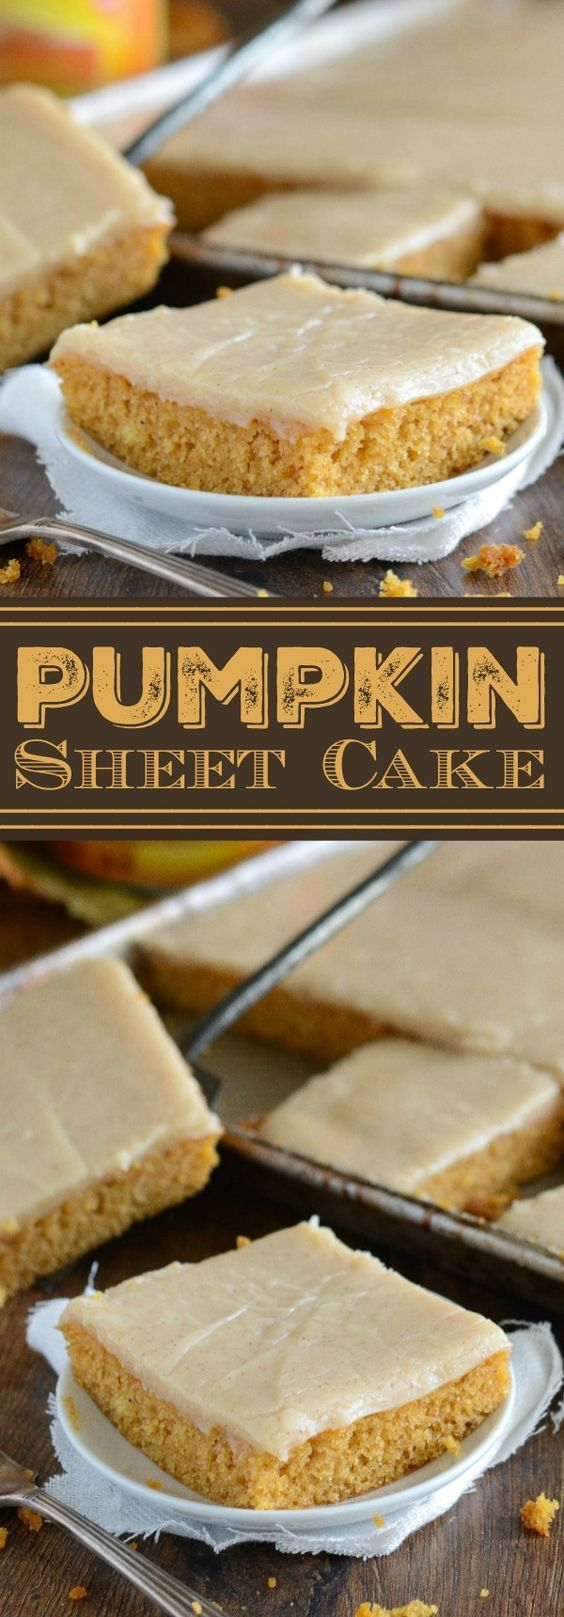 Pumpkin Sheet Cake with Cinnamon Cream Cheese Frosting Recipe via The Novice Chef - This cake only takes 30 minutes! This Pumpkin Sheet Cake is a moist spiced pumpkin cake that uses melted butter for easiness. Then you pour on some gorgeous cinnamon cream (Pour Icing Cookies)